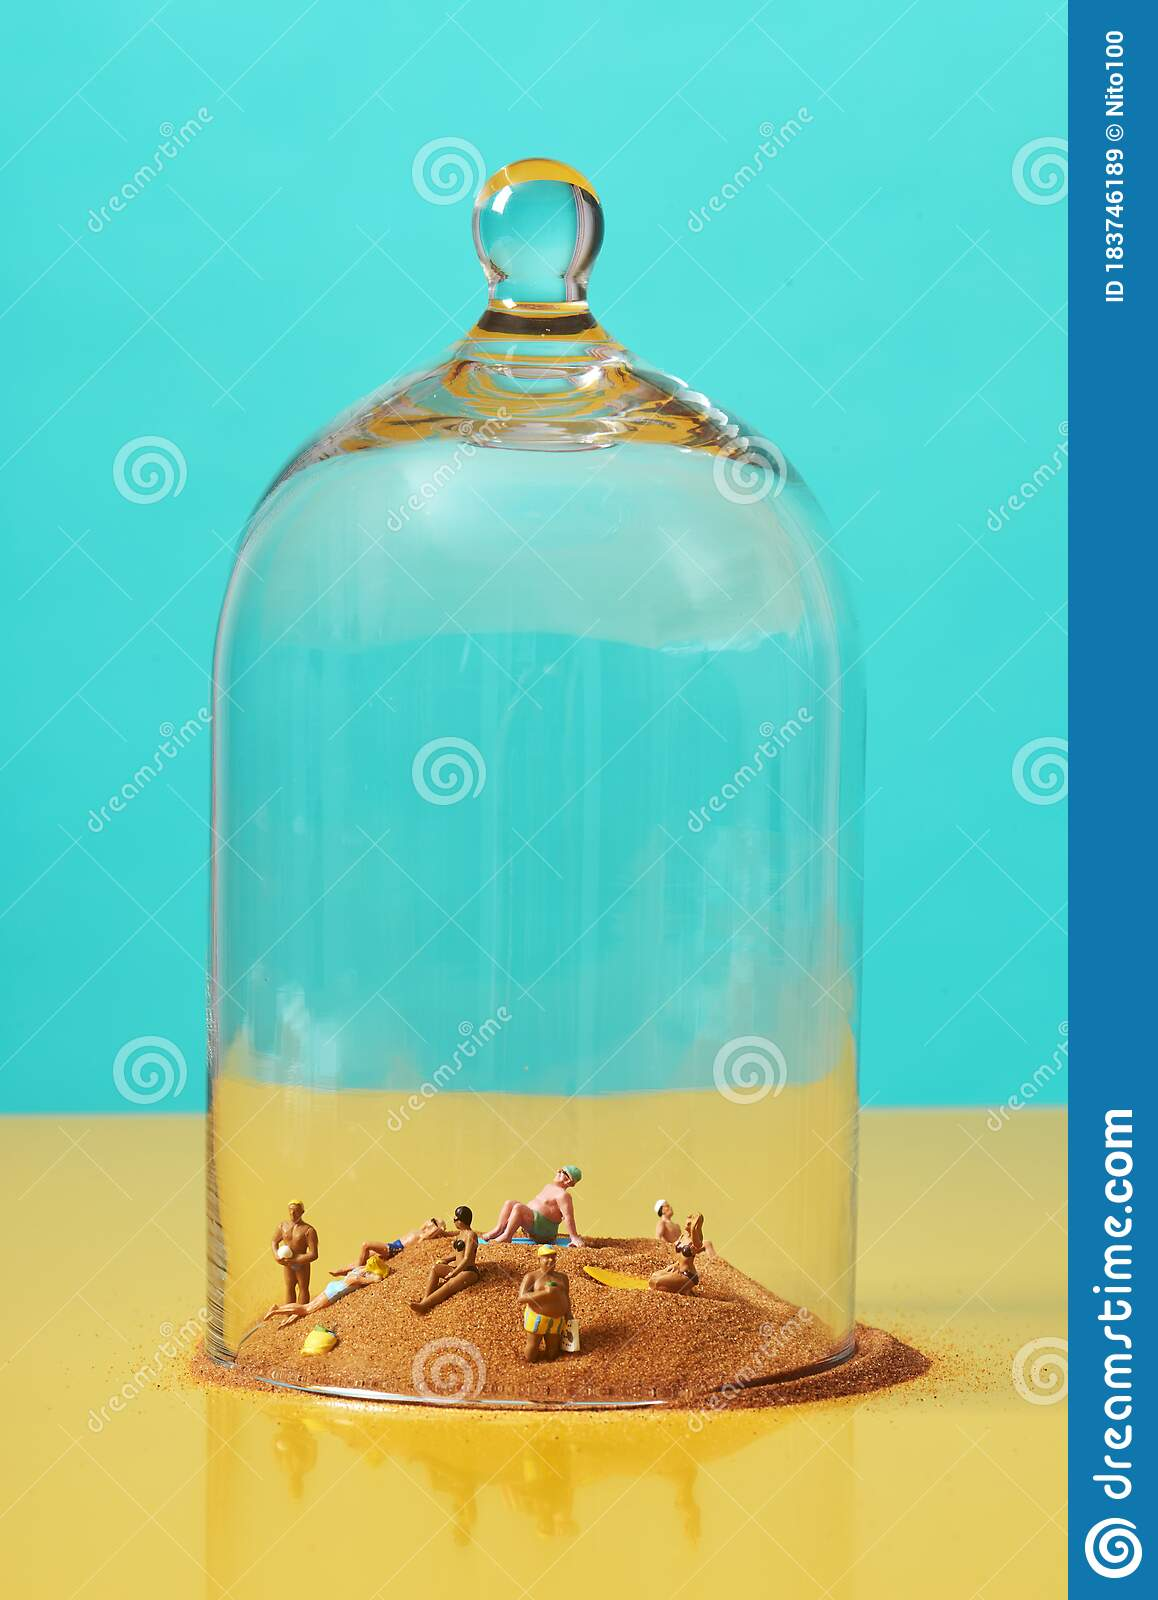 Miniature People On The Sand In A Bell Jar Stock Image Image Of Conceptual Relaxing 183746189